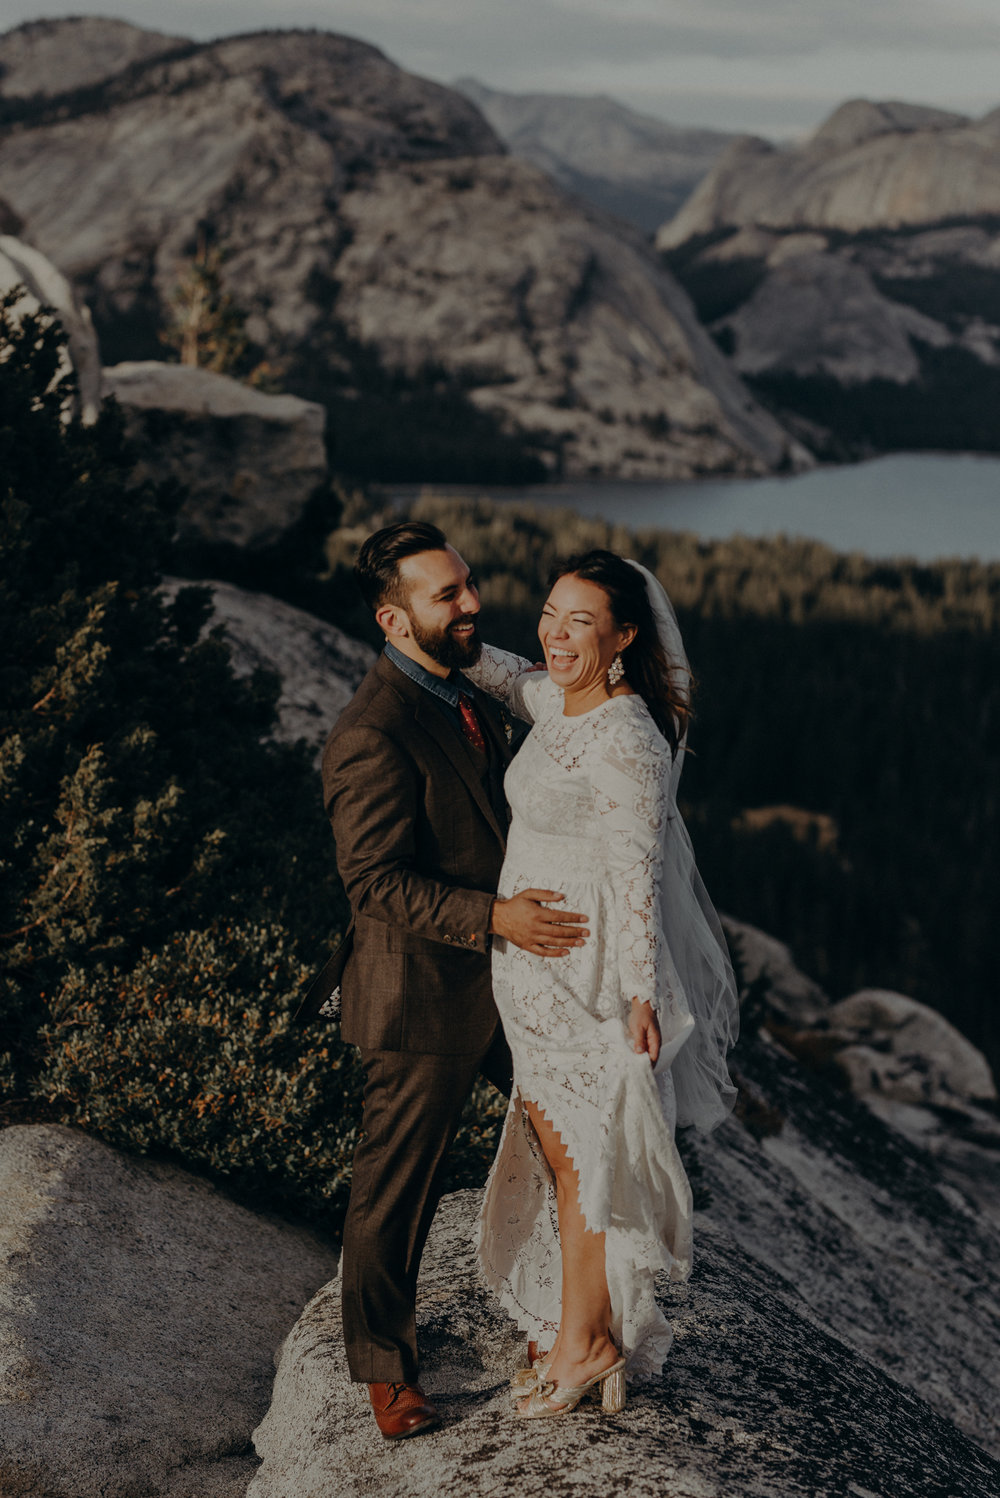 Yosemite Elopement Photographer - Evergreen Lodge Wedding Photographer - IsaiahAndTaylor.com-026.jpg